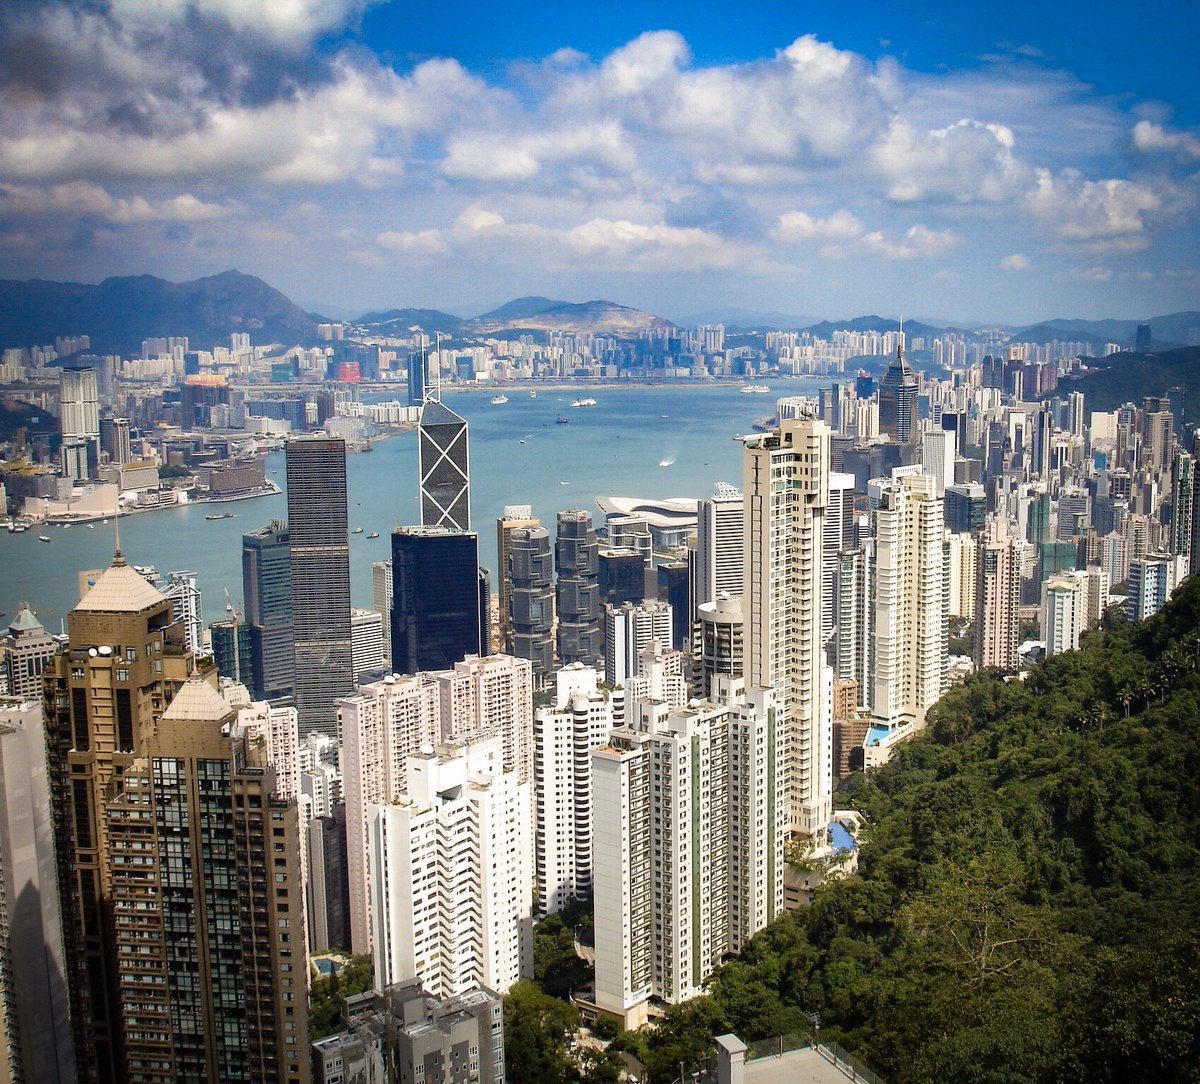 Hong Kong One of my favourite city views which can be seen from #VictoriaPeak.  Over 7 million visitors come here each year to see this amazing view.   What are some of your favourite city views?  @HongKongTourism #HongKong #travelpic.twitter.com/TZgR0eSe6r